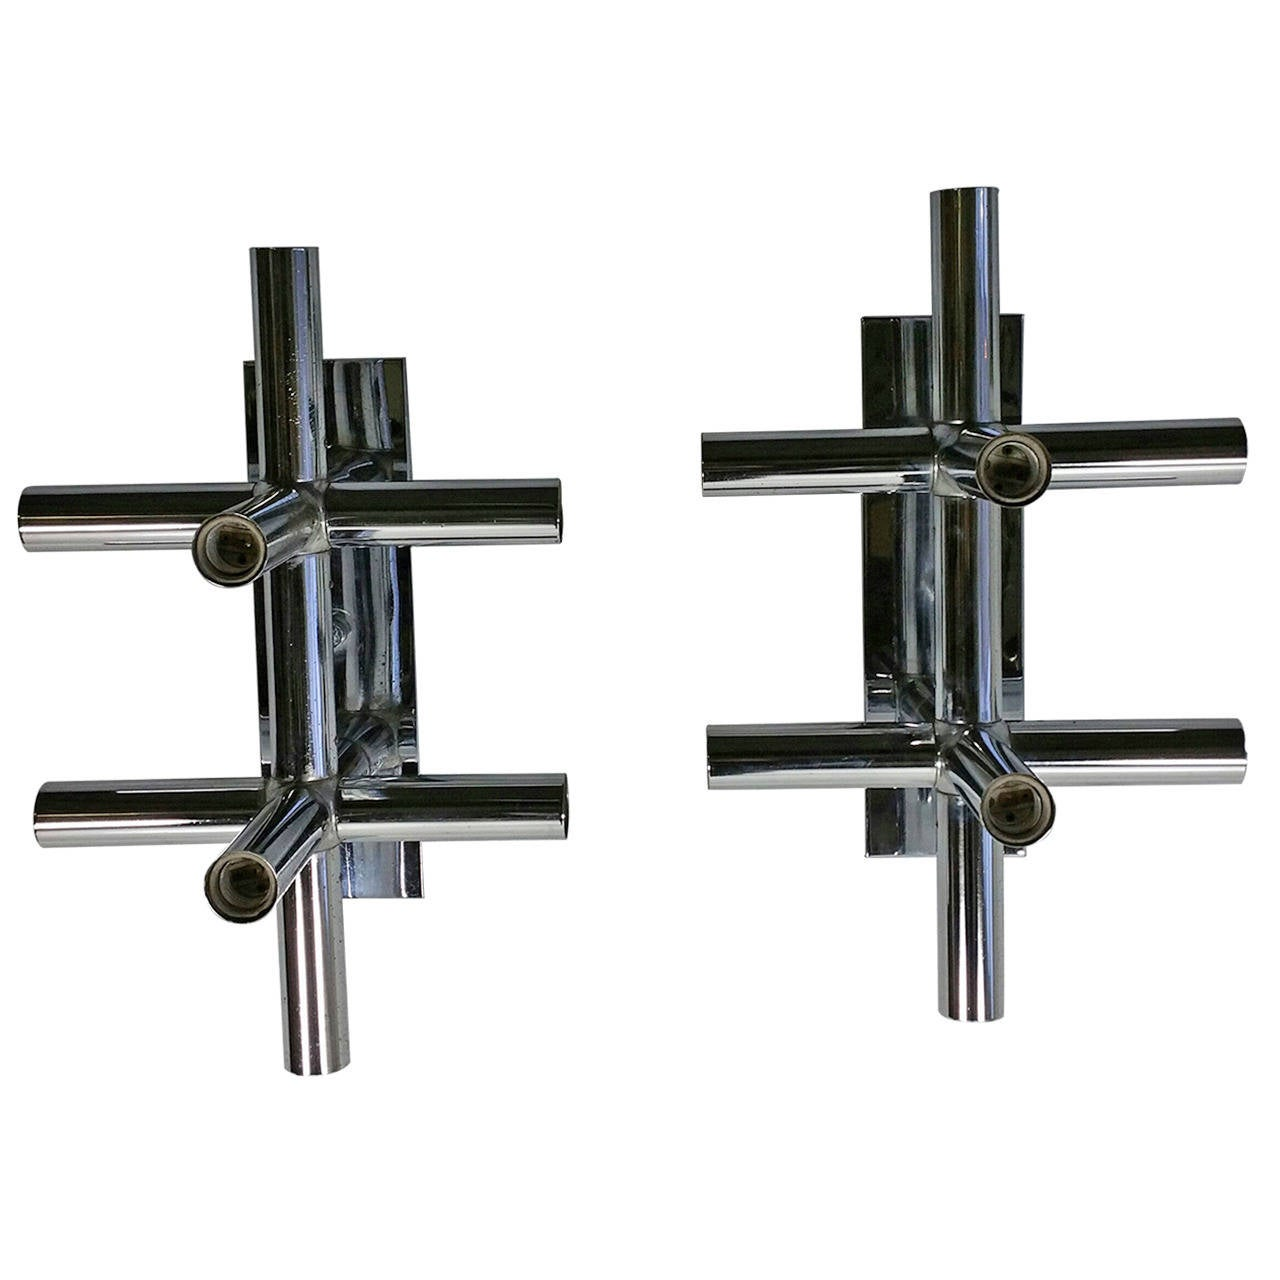 Pair Of Lightolier Chrome Tube Sconces 1970s Space Age Atomic For Sale At 1stdibs